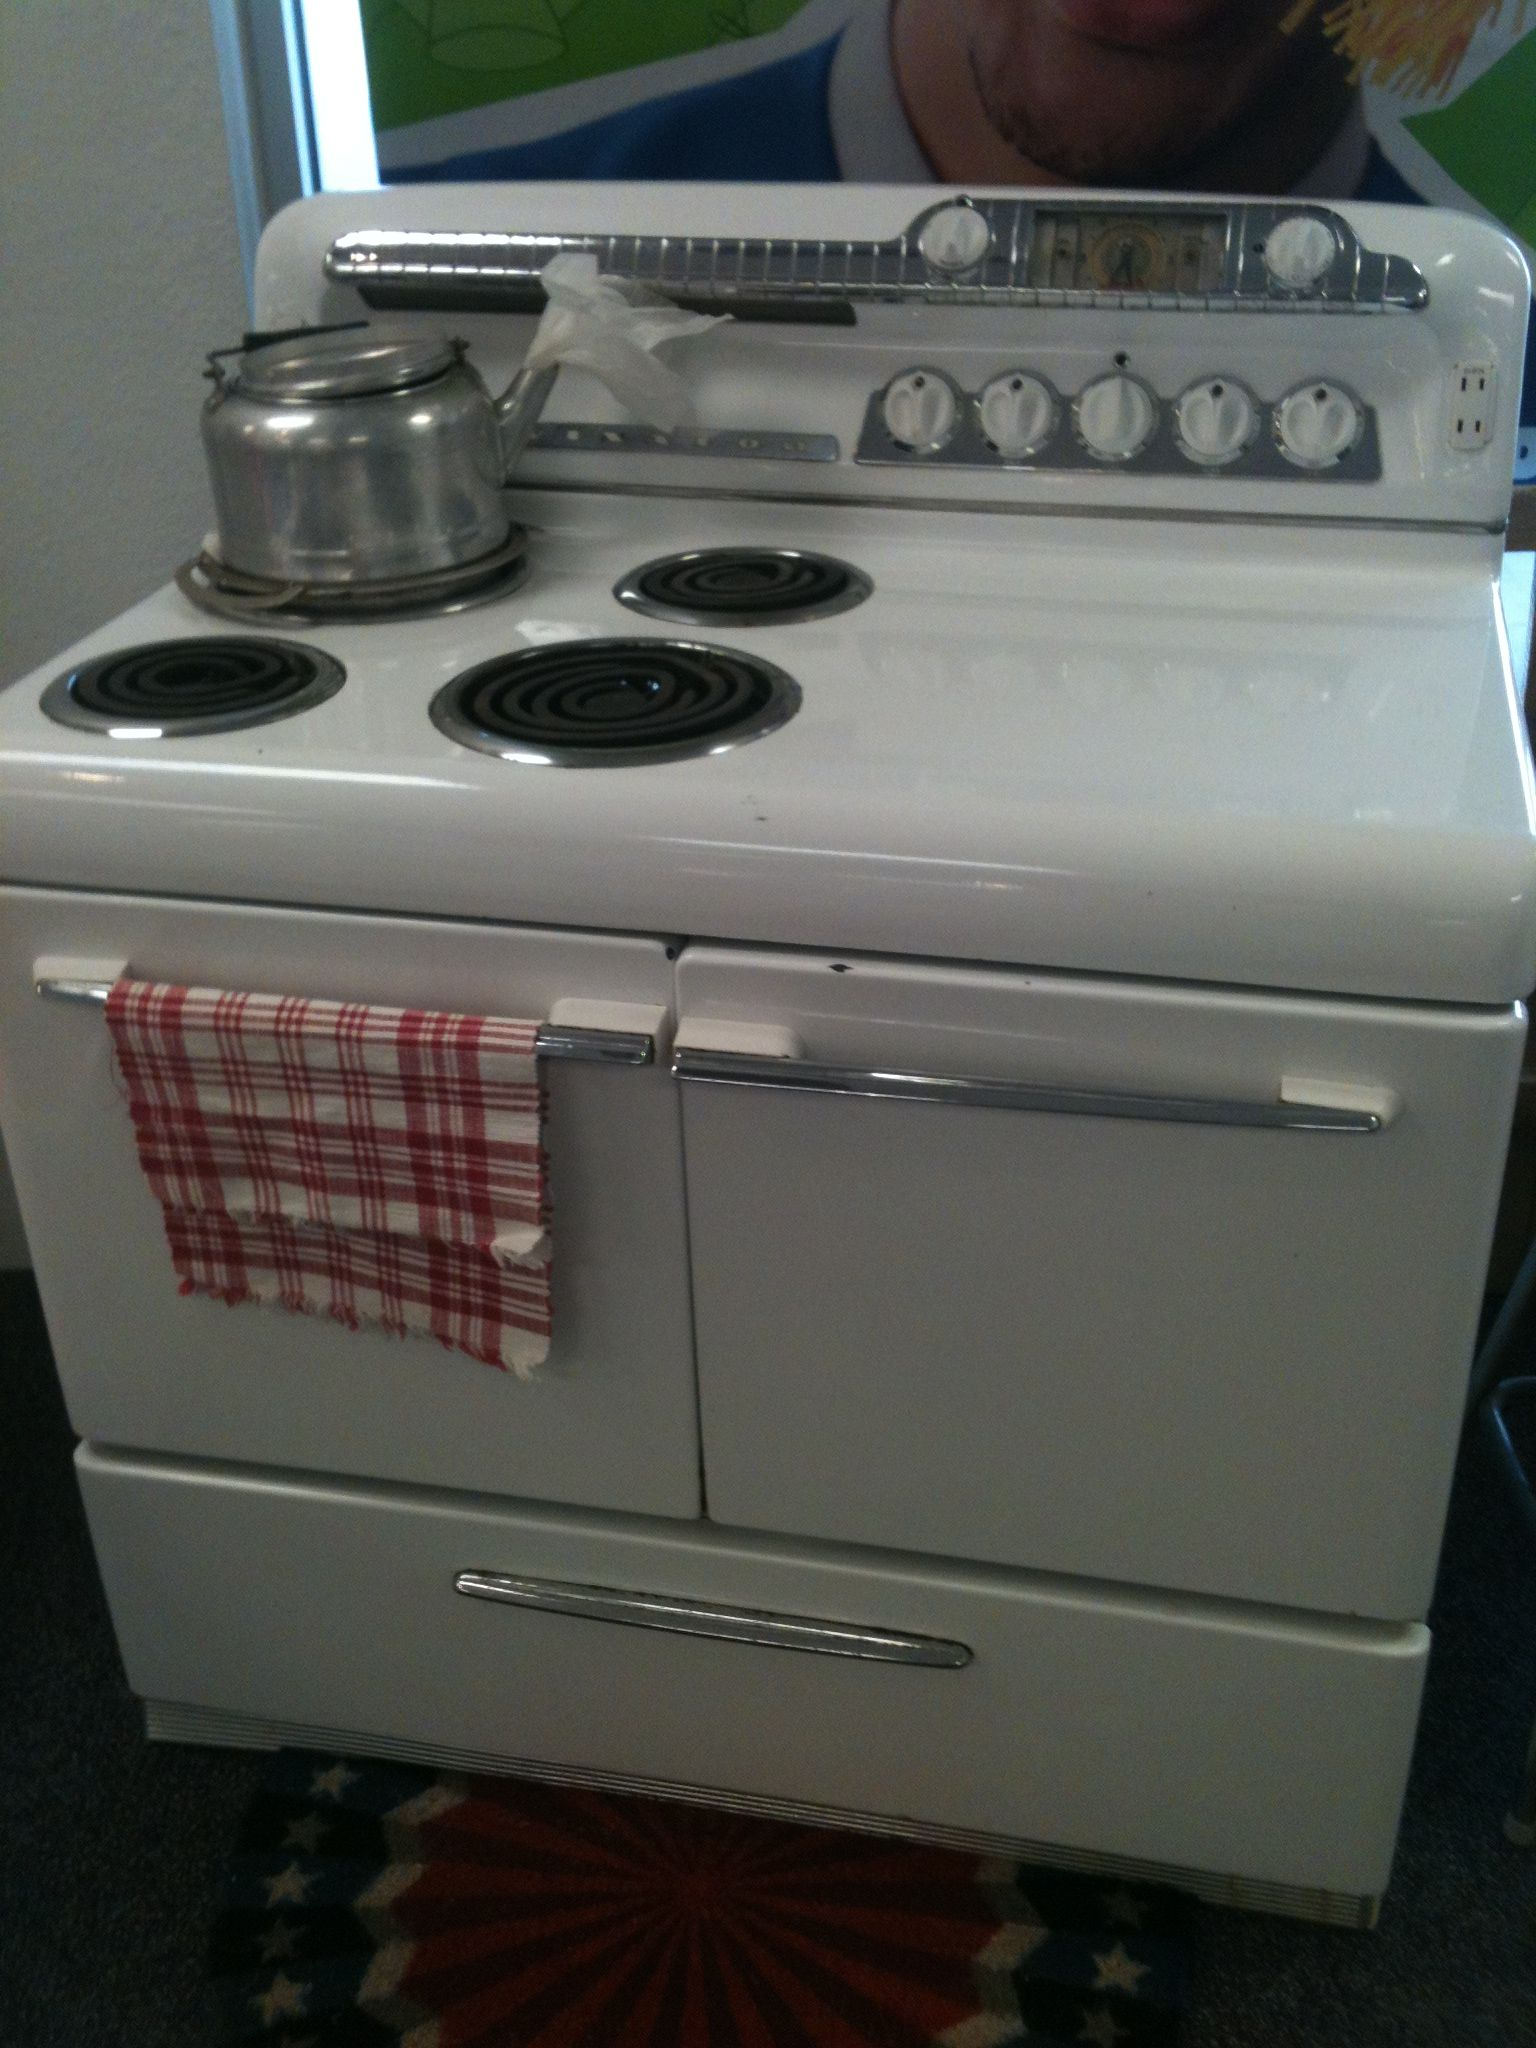 Retro Kitchen Appliances For Sale Nutri 1950s Kelvinator Range Cook Stove 350 Makes A